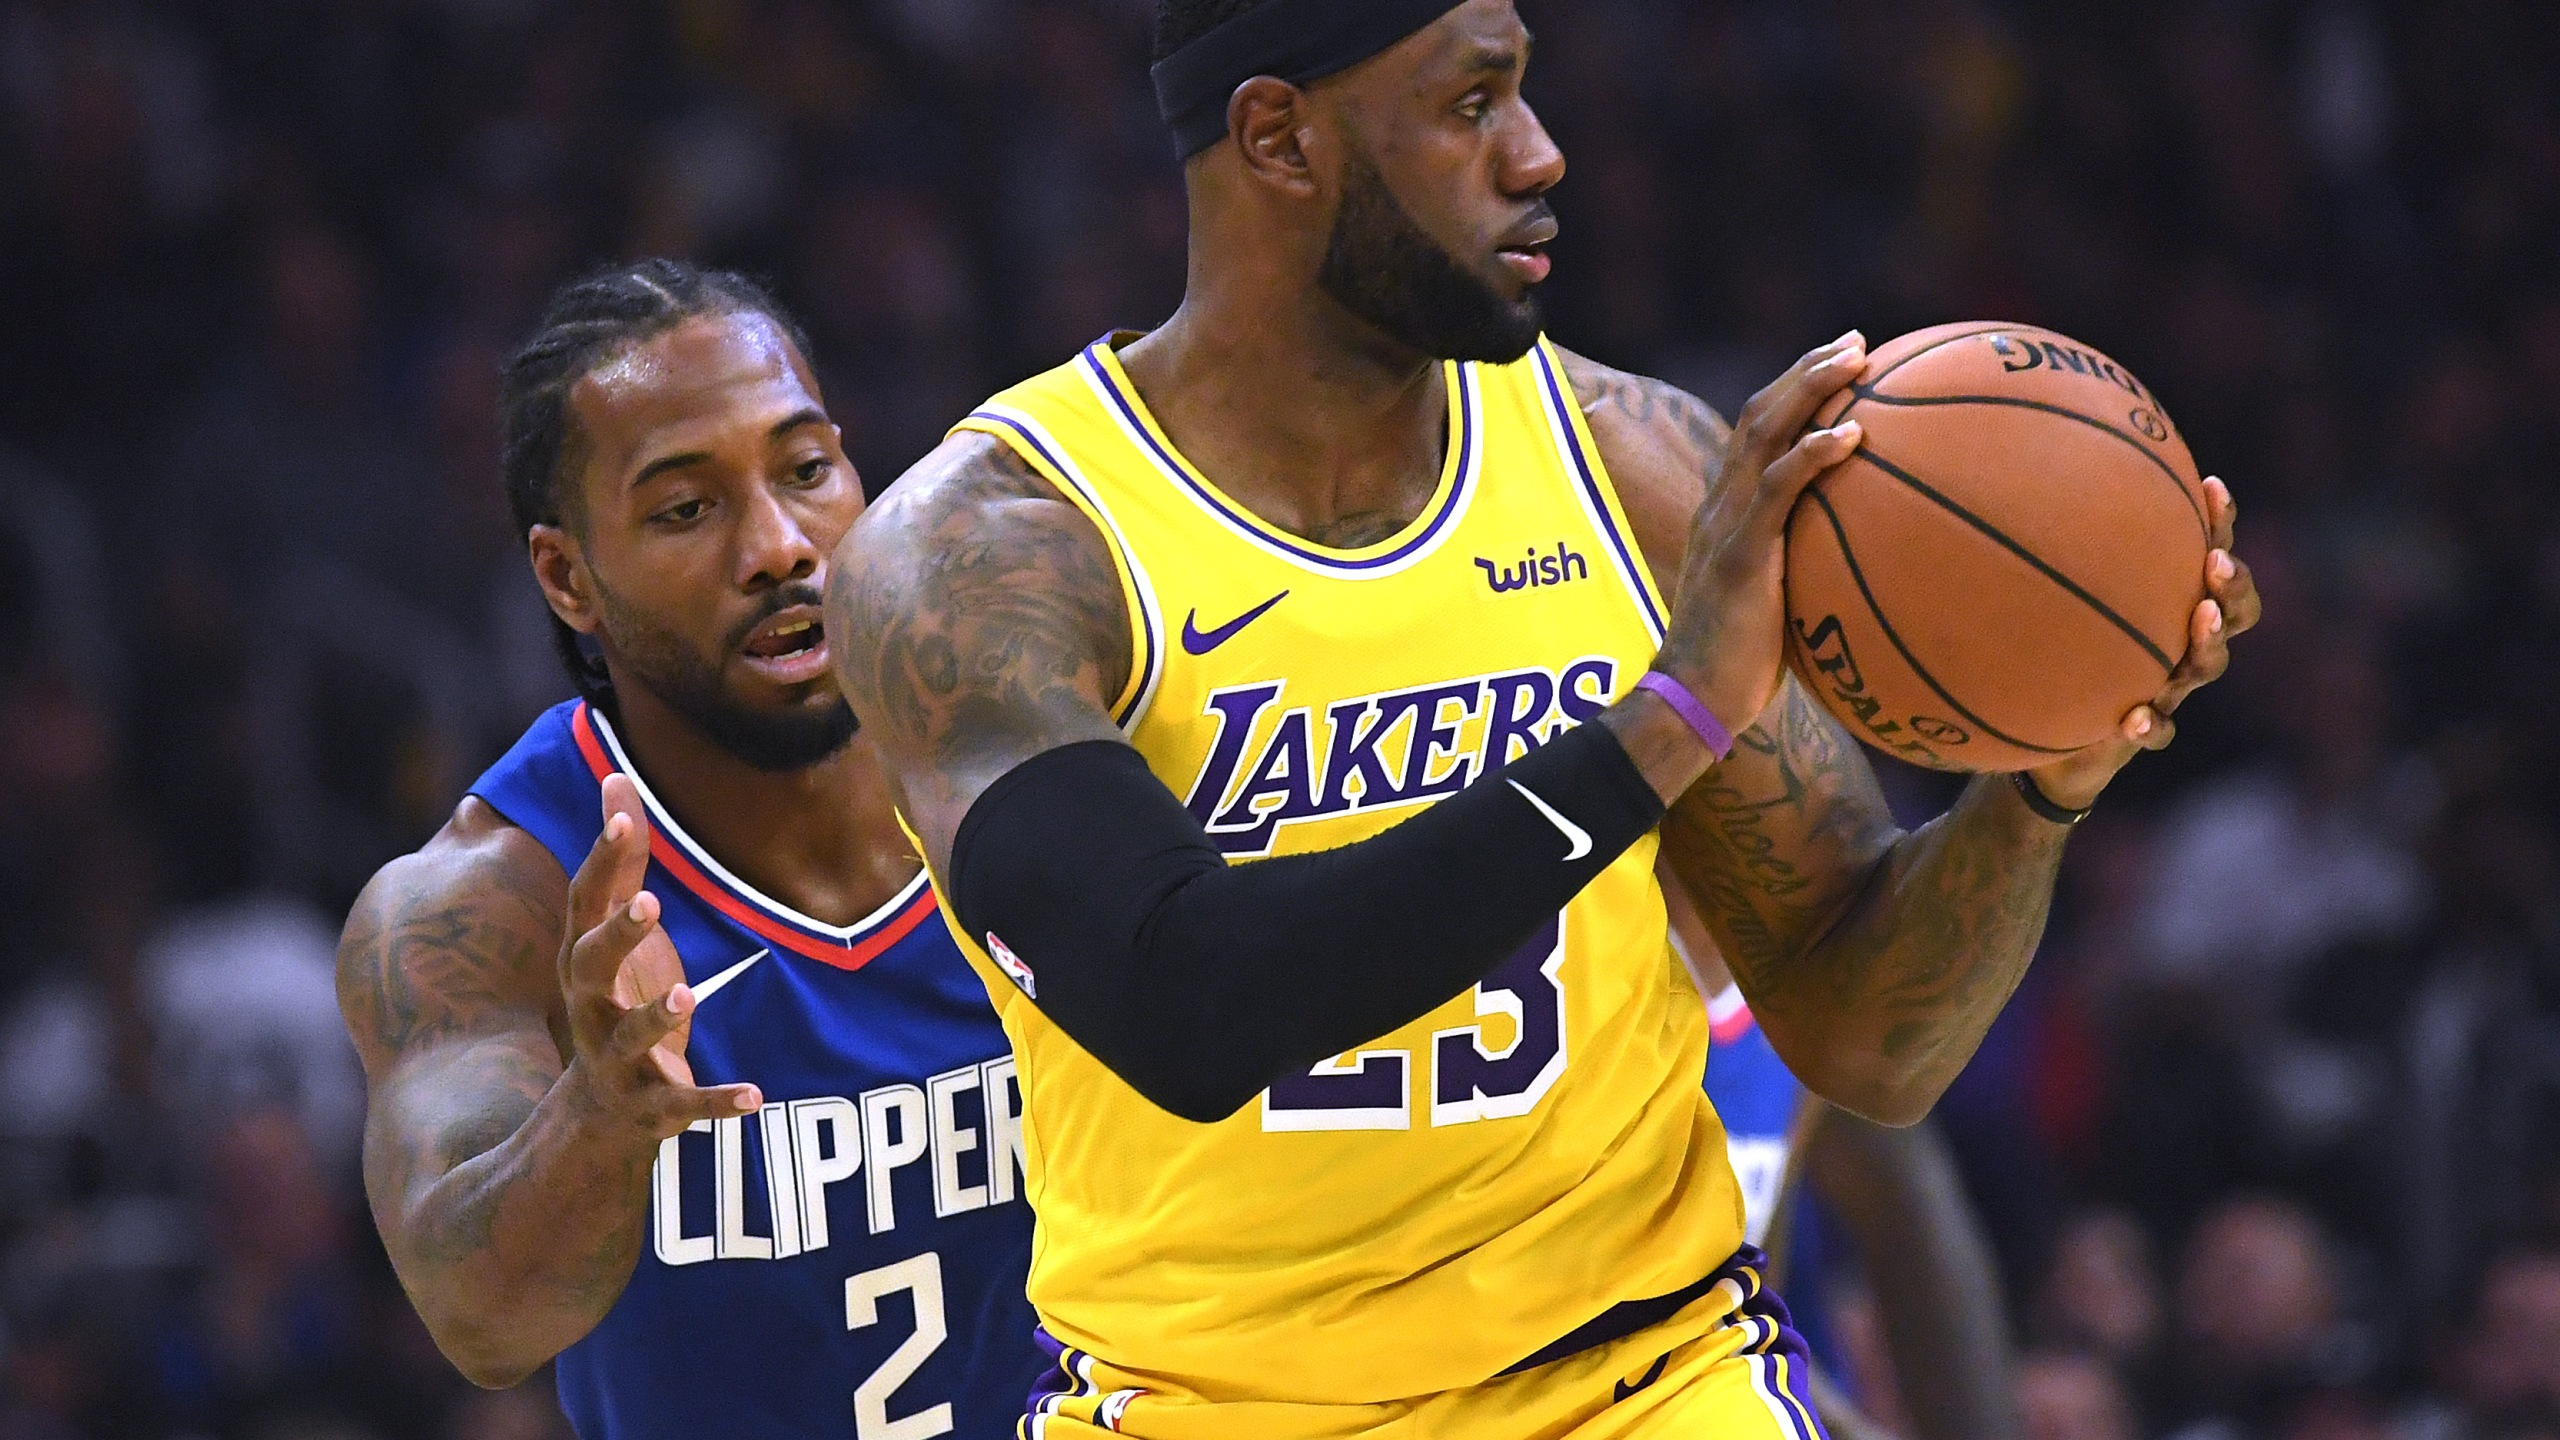 Kawhi Leonard and LeBron James play at Staples Center on Oct. 22, 2019. (Harry How/Getty Images)